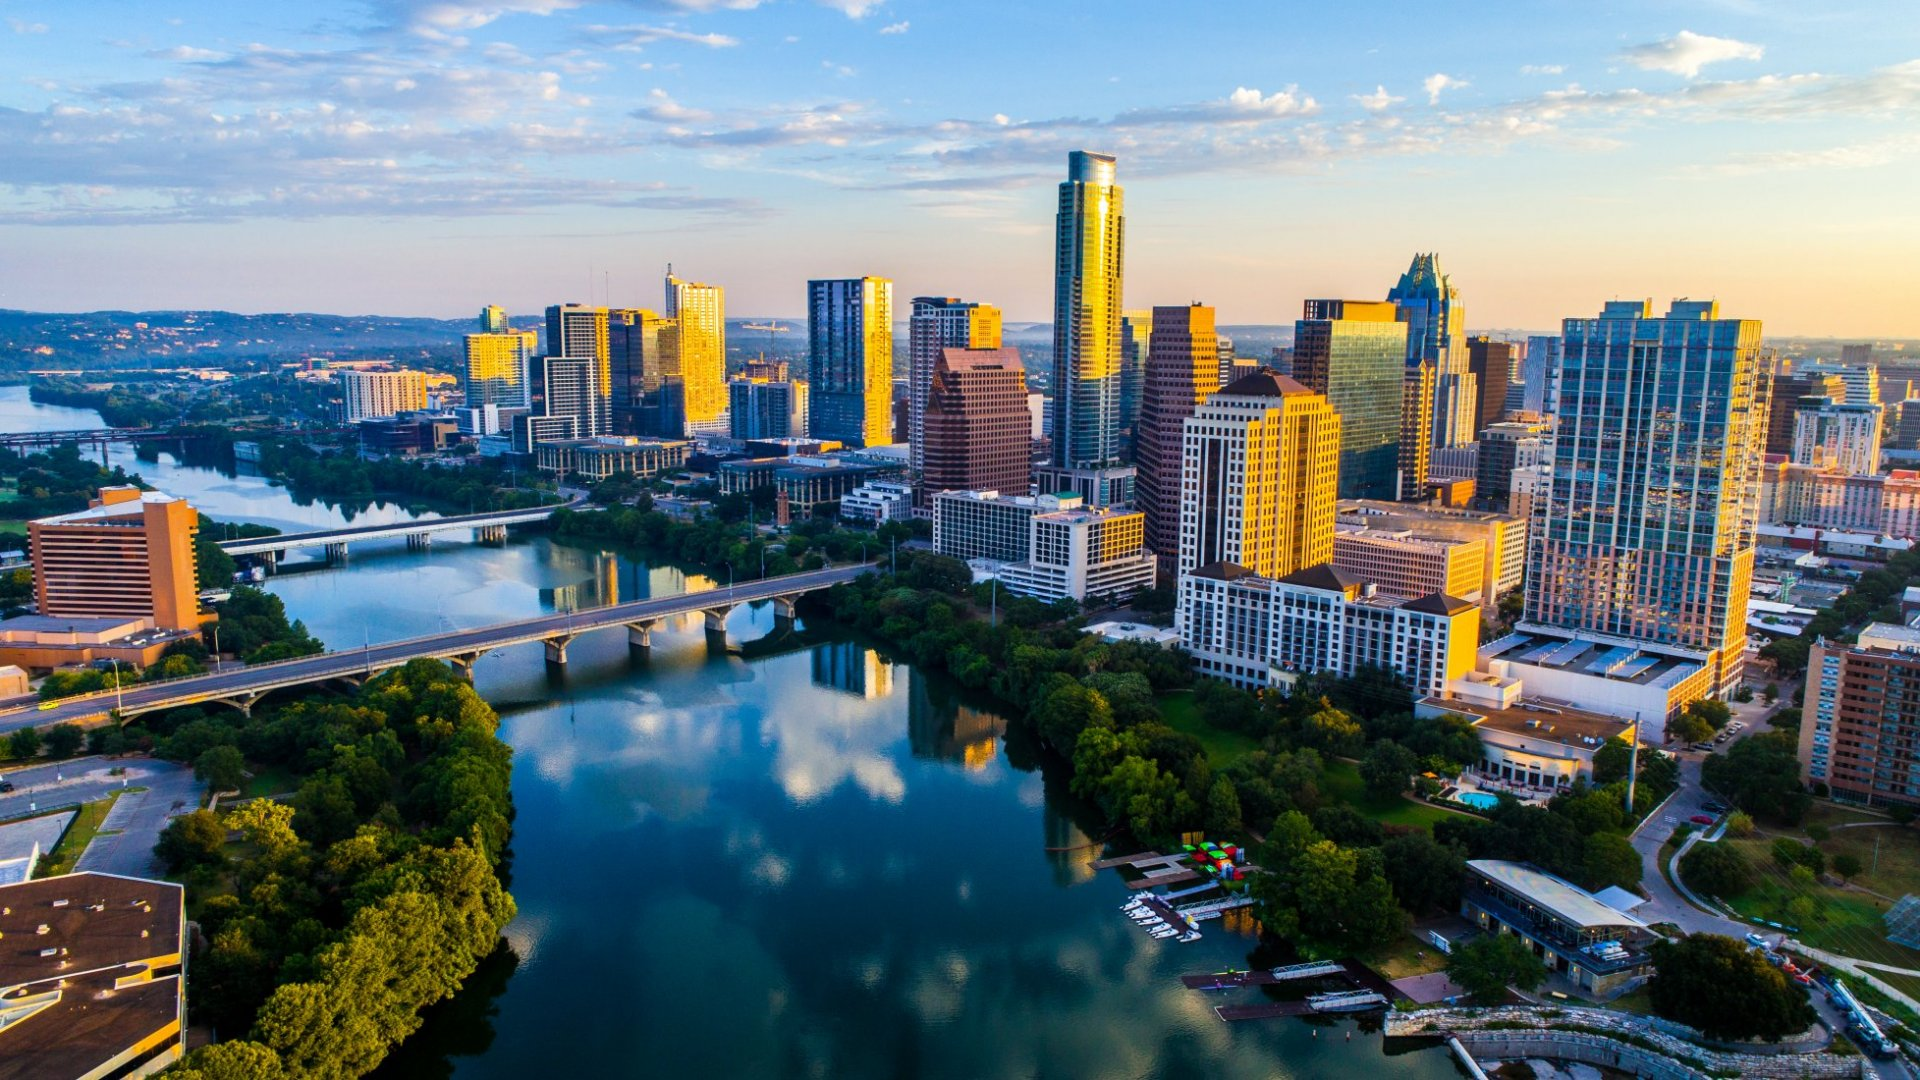 The 5 Top Cities for Entrepreneurs, According to the Numbers